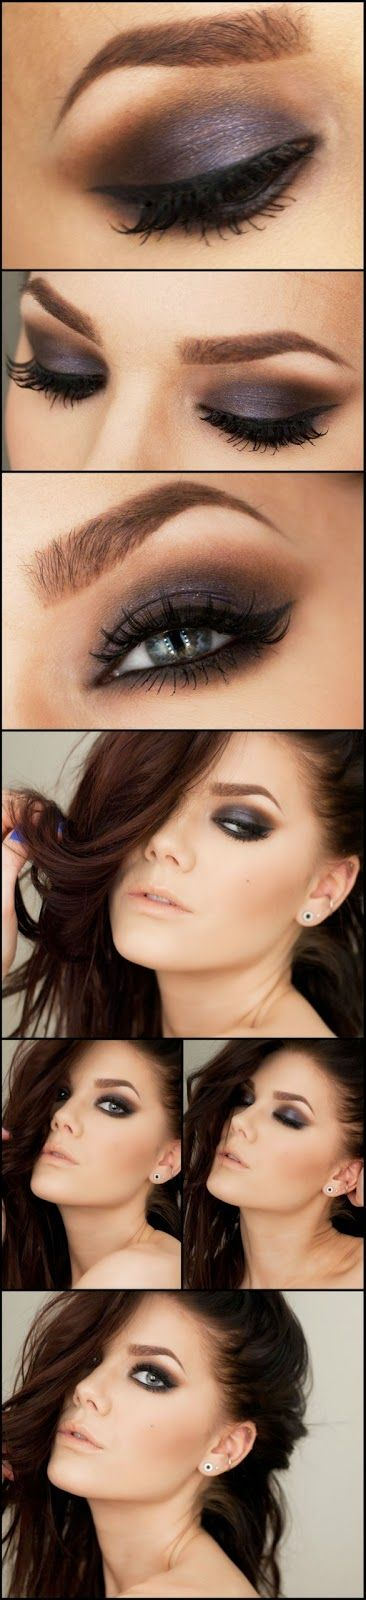 Purple Toned brown smokey eye makeup look and natural nude lip by makeup artist Linda Hallberg. Have you seen the new promotion Real Techniques brushes makeup -$10 http://youtu.be/Ma9w3IGLEzA